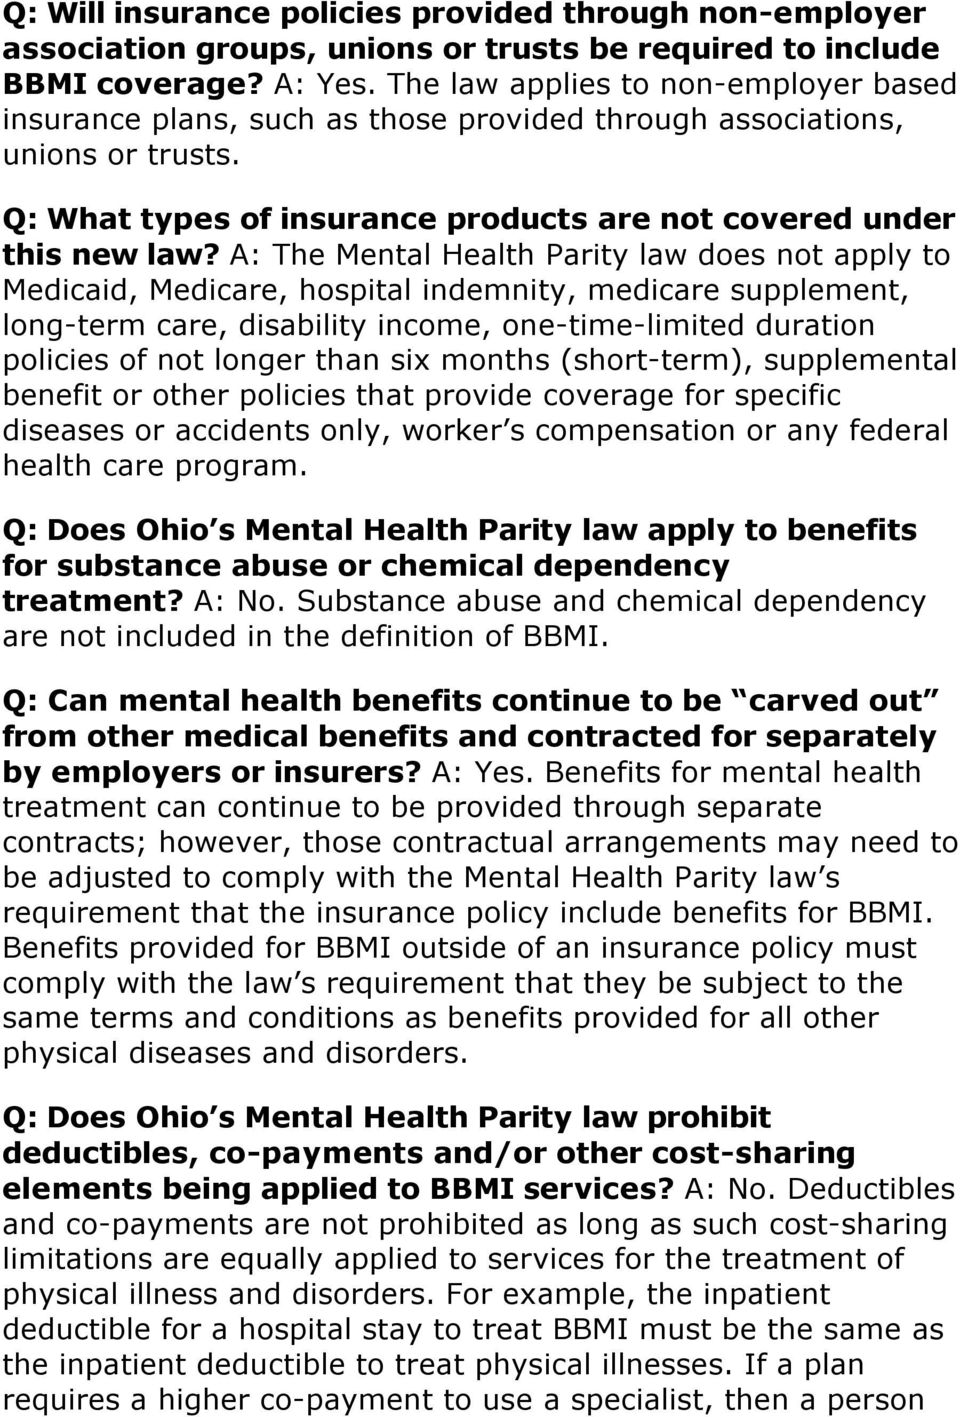 A: The Mental Health Parity law does not apply to Medicaid, Medicare, hospital indemnity, medicare supplement, long-term care, disability income, one-time-limited duration policies of not longer than